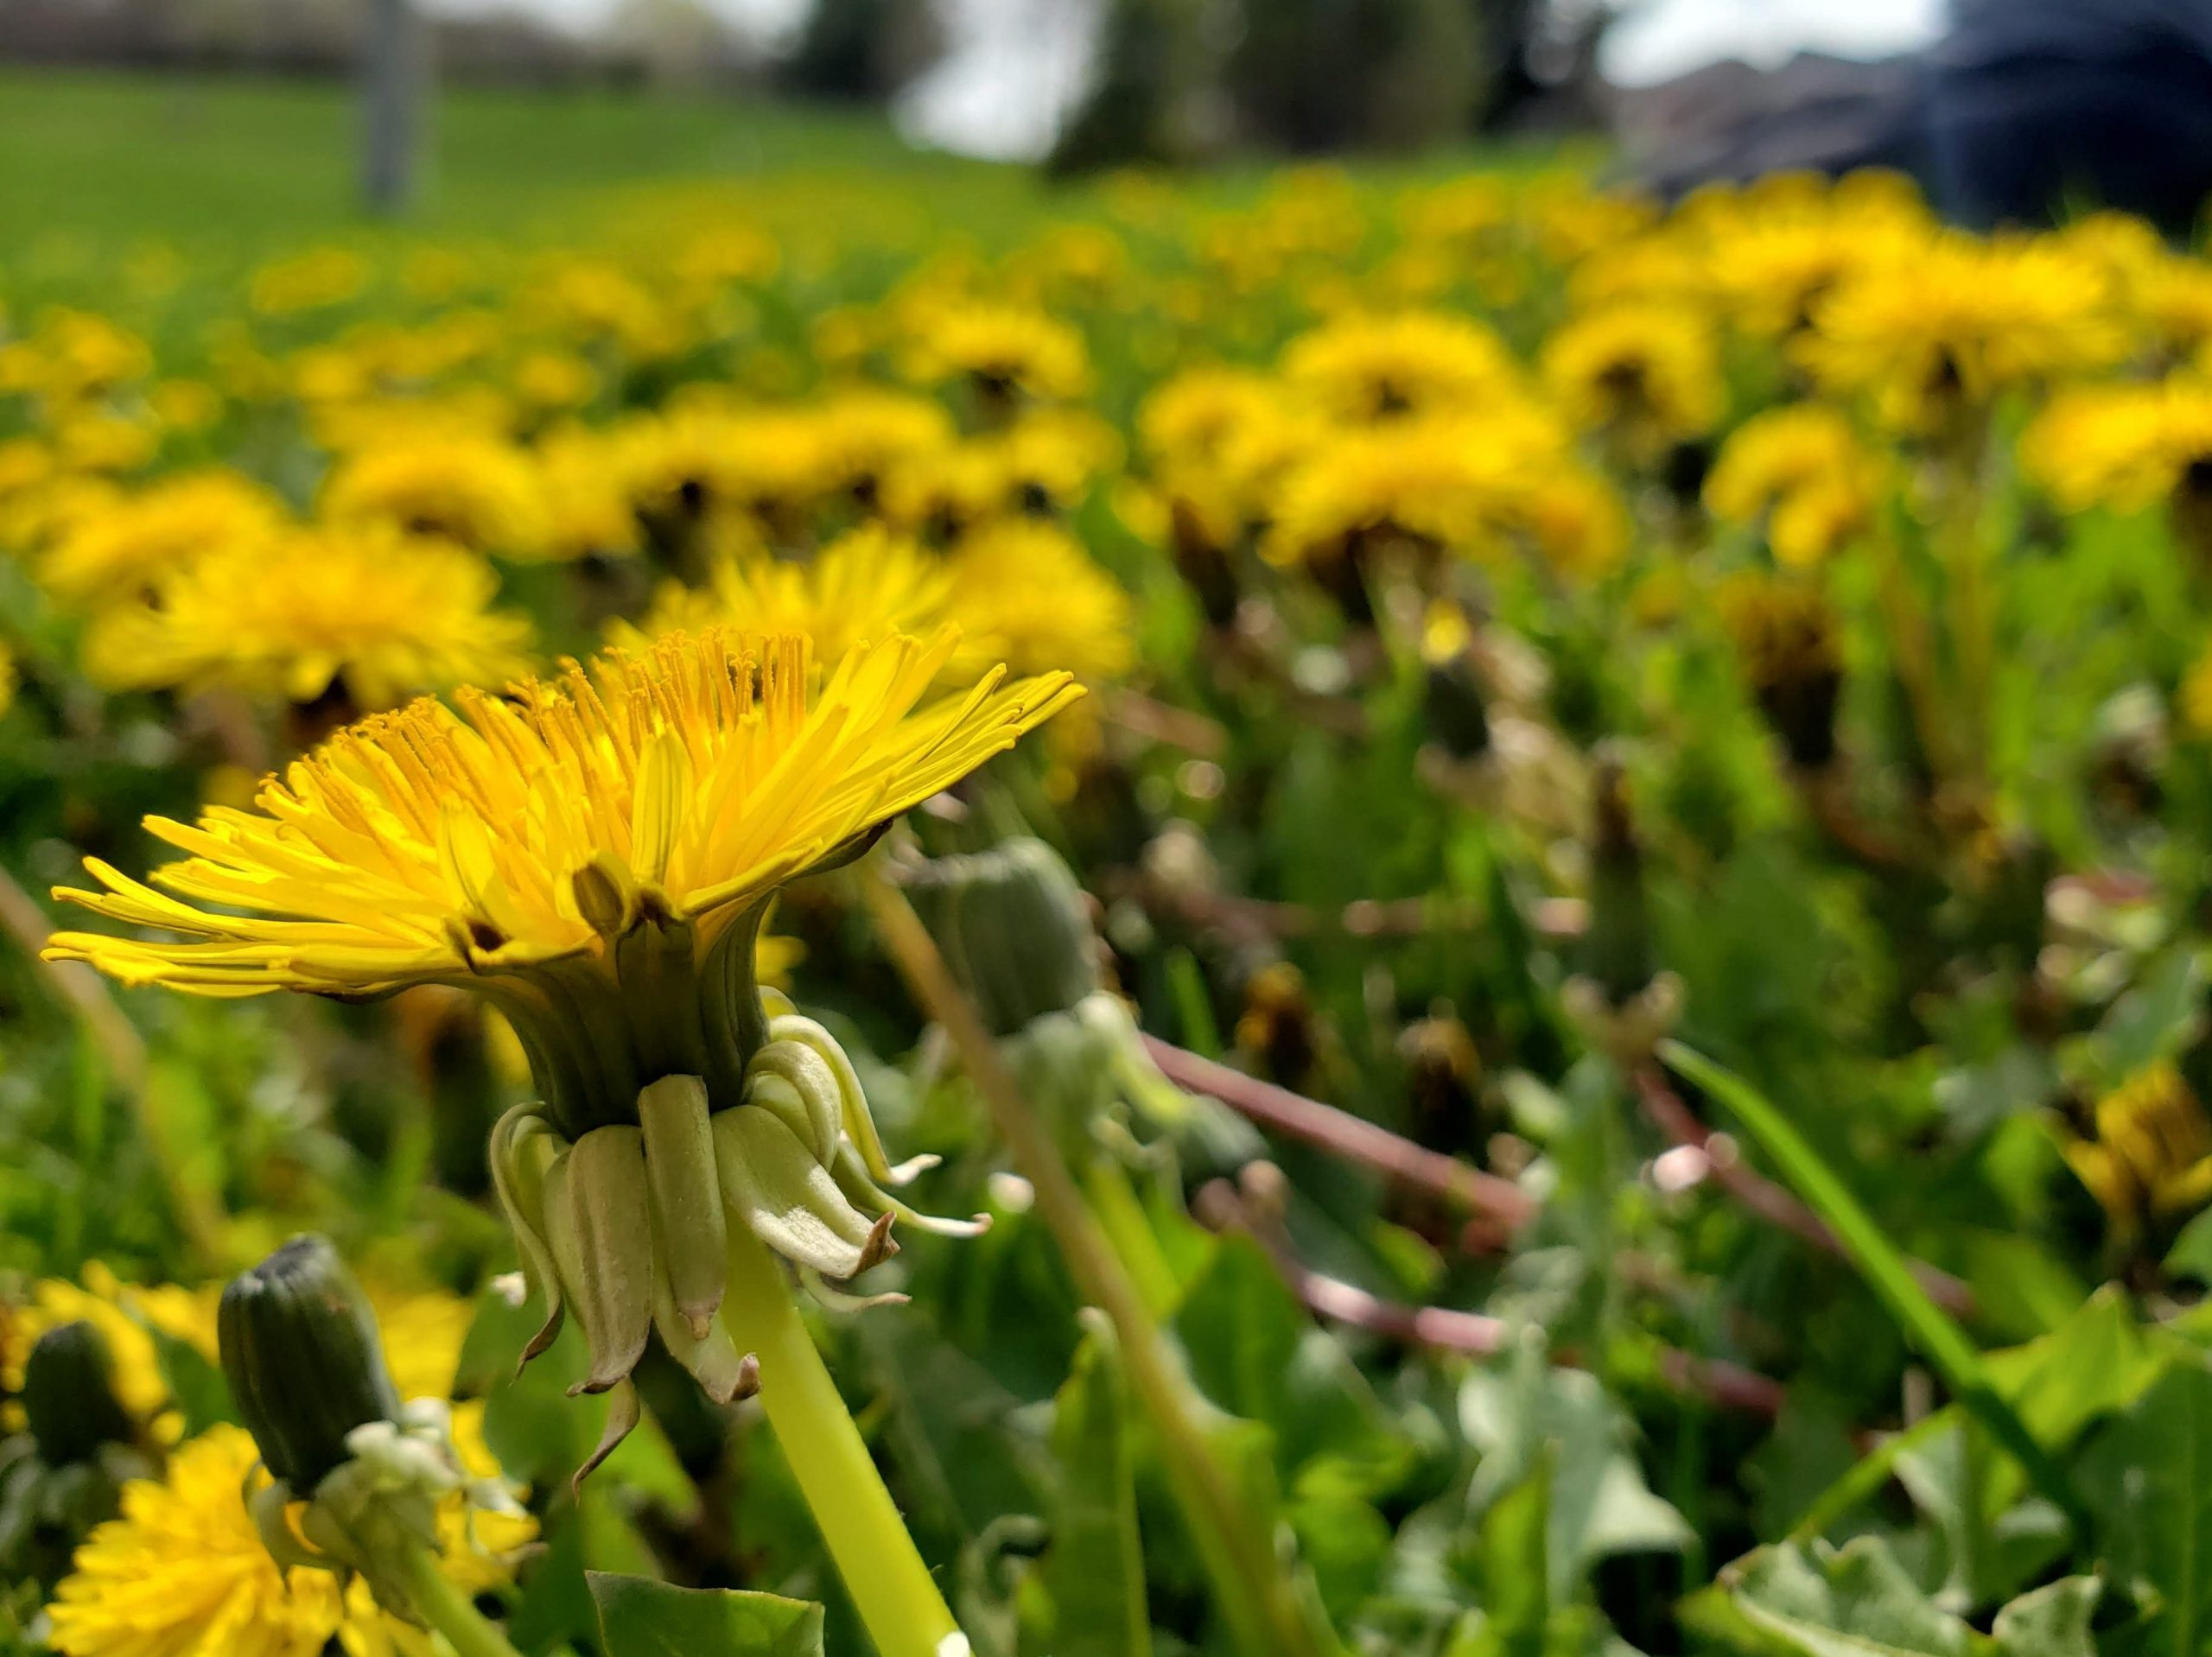 dandelions led to a mindset shift with openness and curiosity